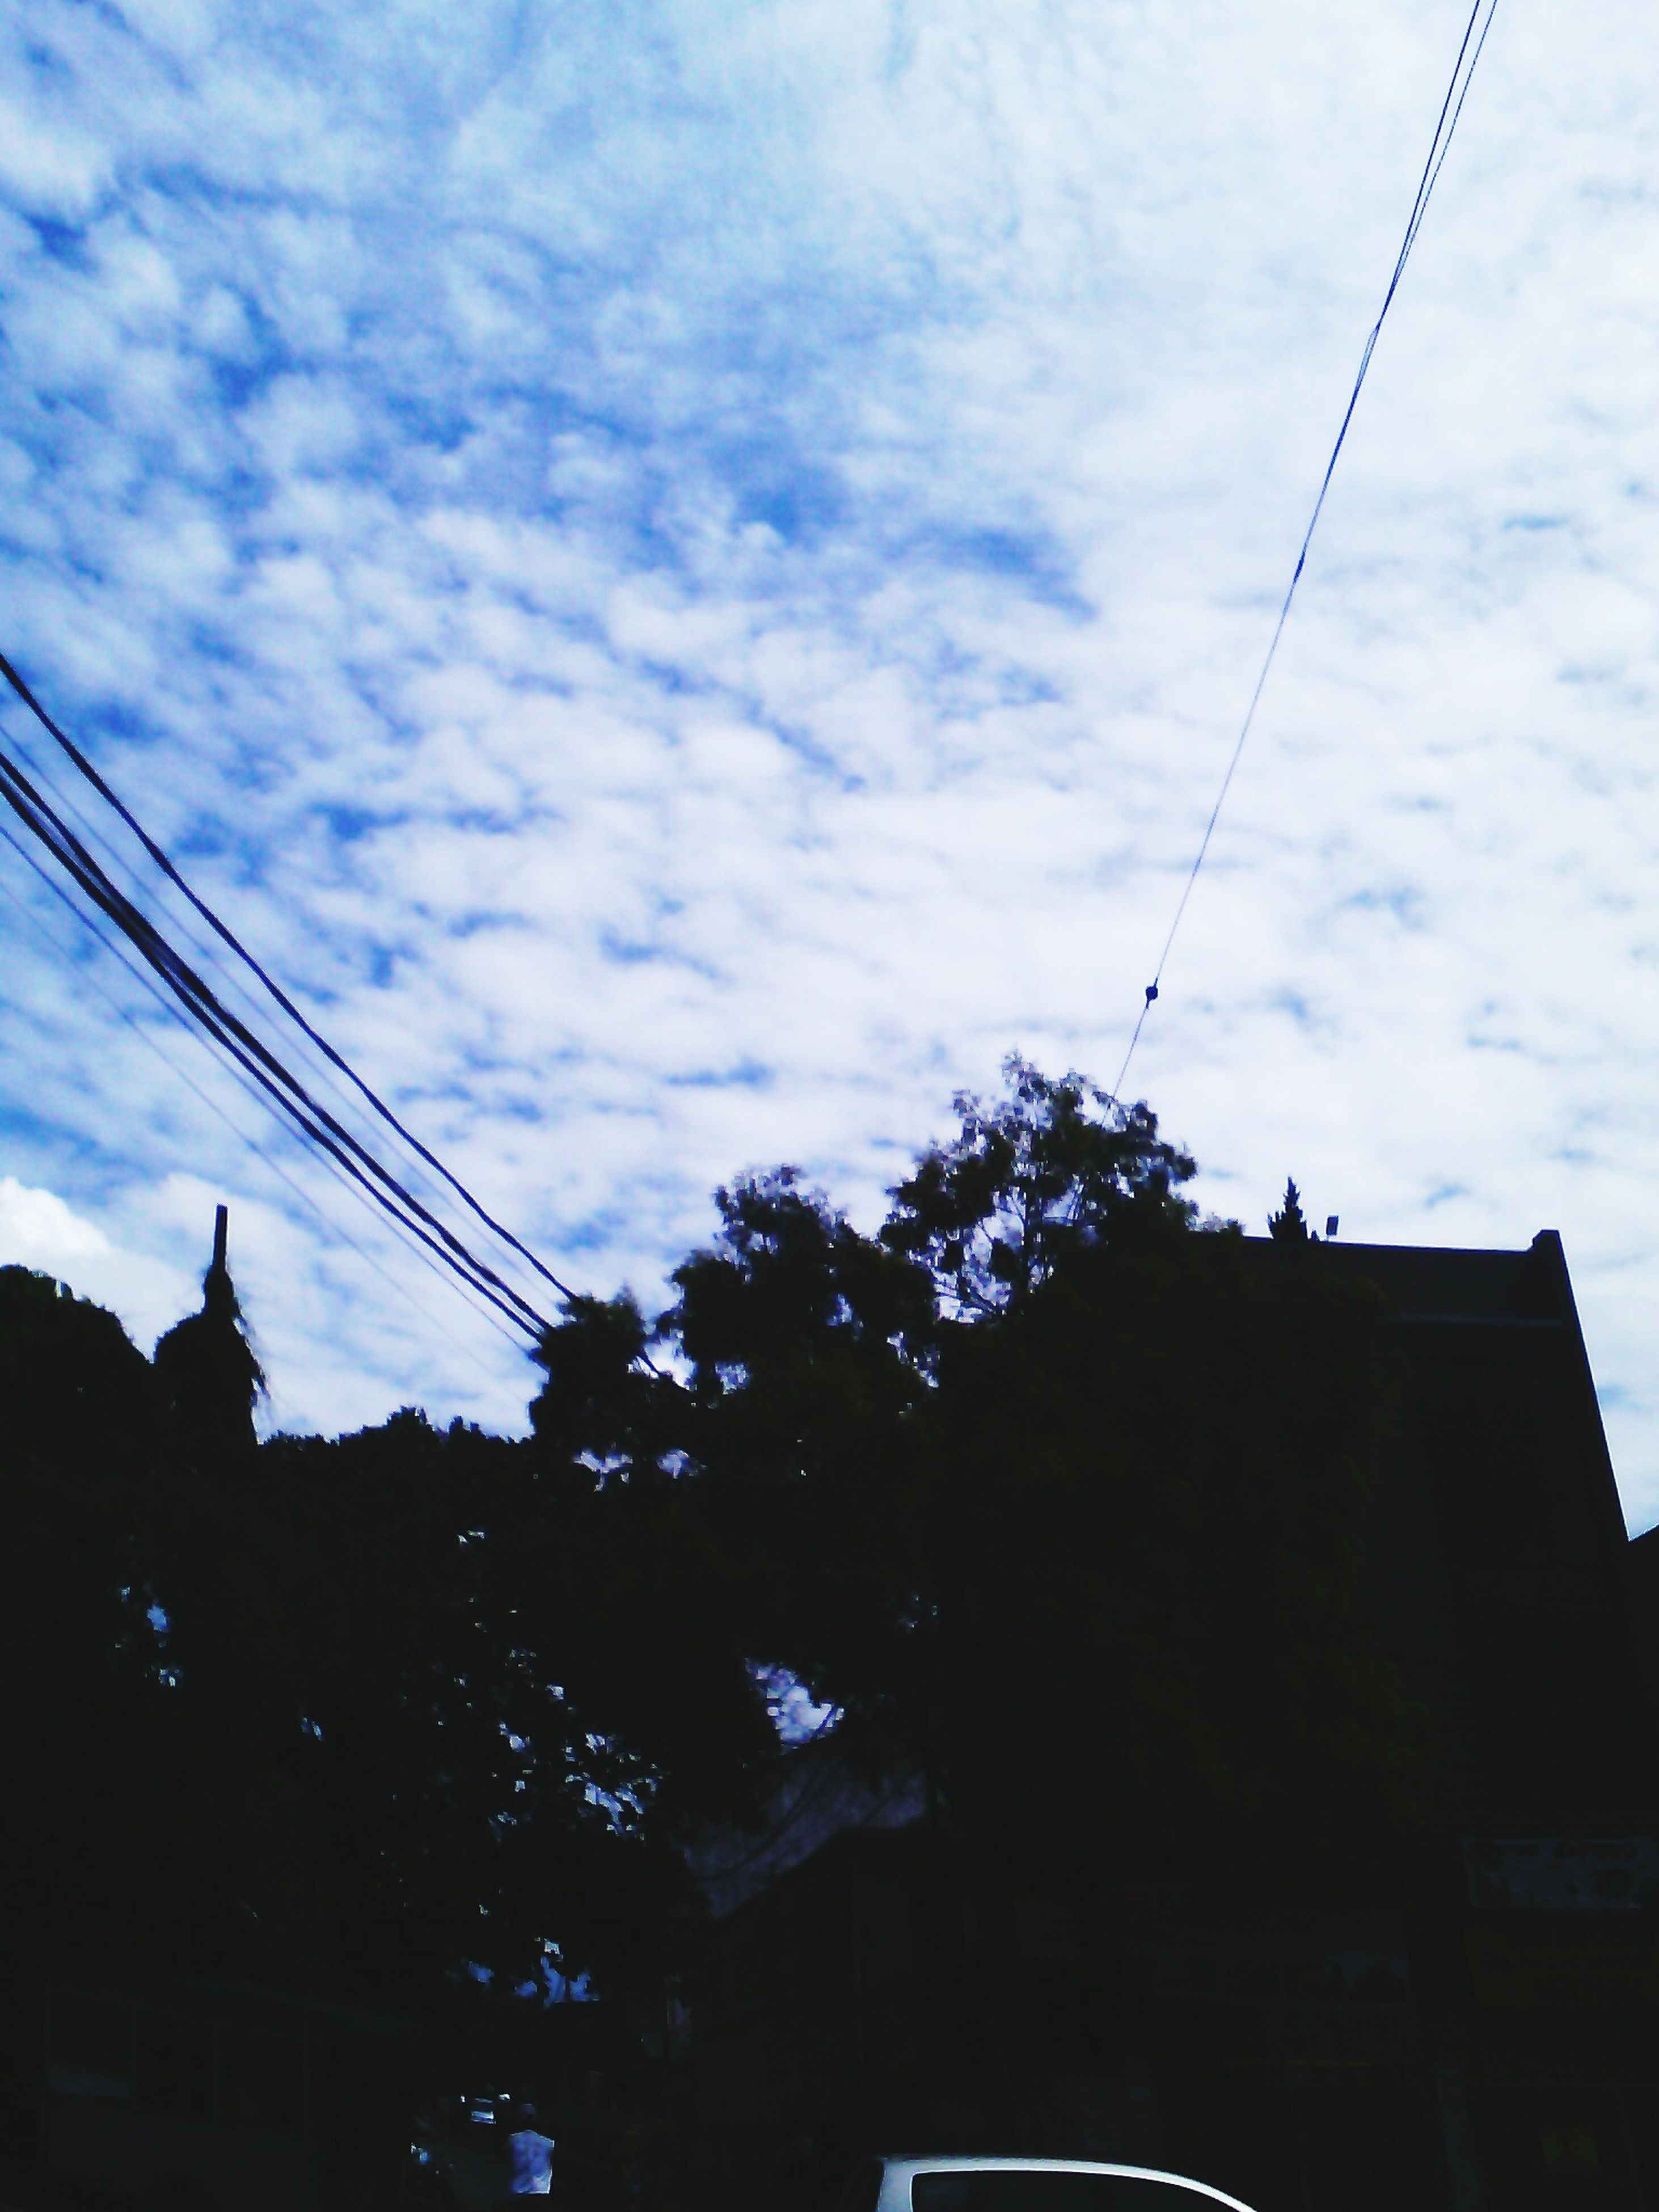 low angle view, architecture, sky, building exterior, built structure, power line, silhouette, cloud - sky, cable, cloudy, cloud, electricity, electricity pylon, street light, tree, building, power cable, dusk, high section, residential building